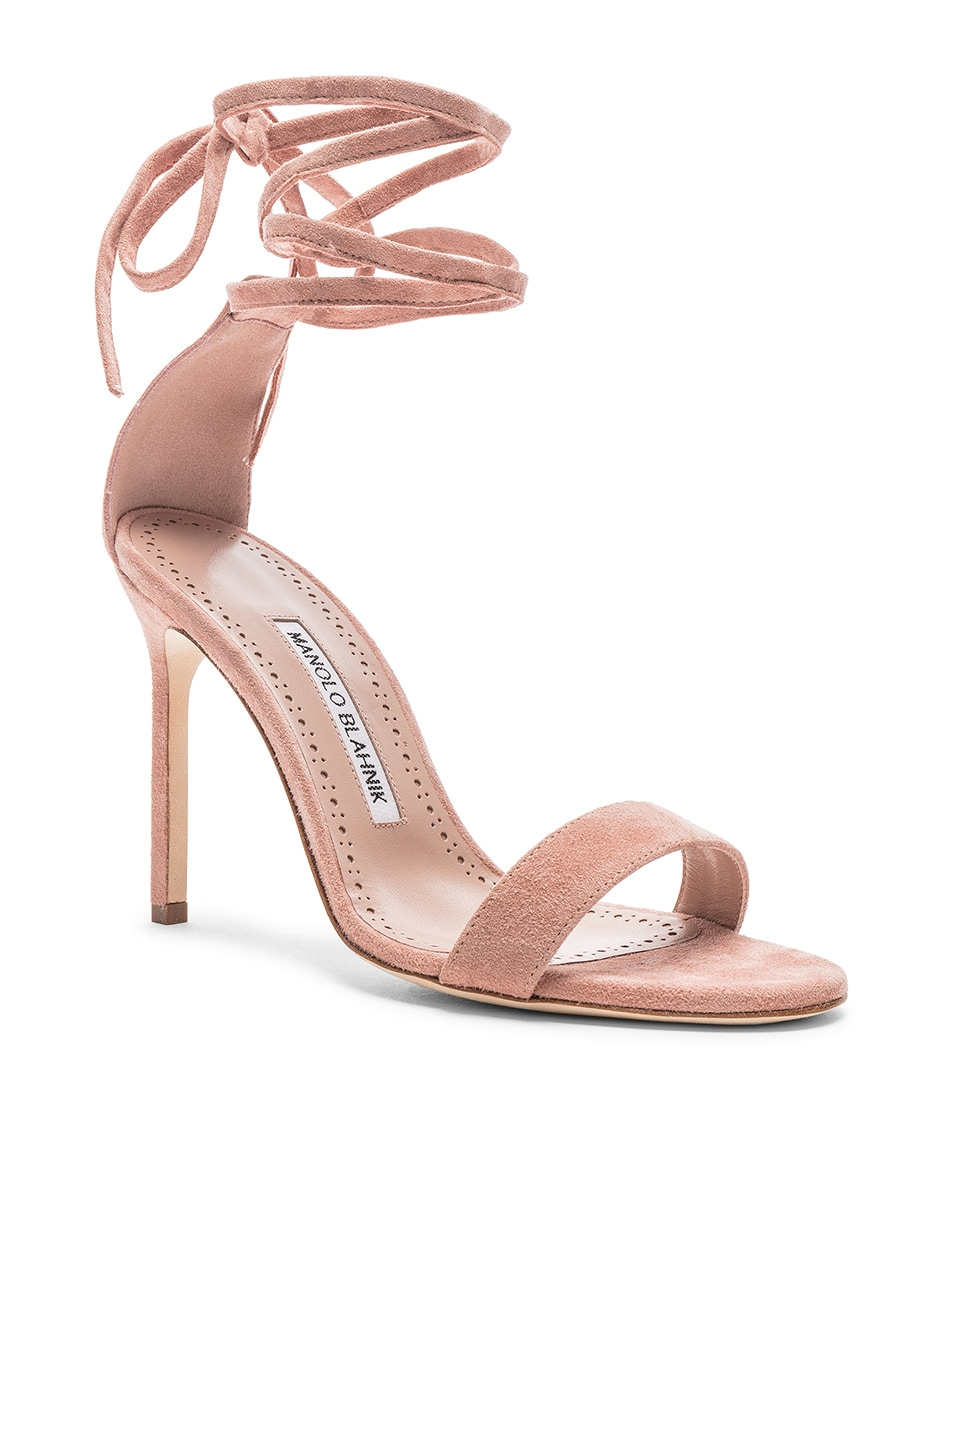 Image 2 of Manolo Blahnik Chaosbow Suede 105 Heel in Canyon Blush